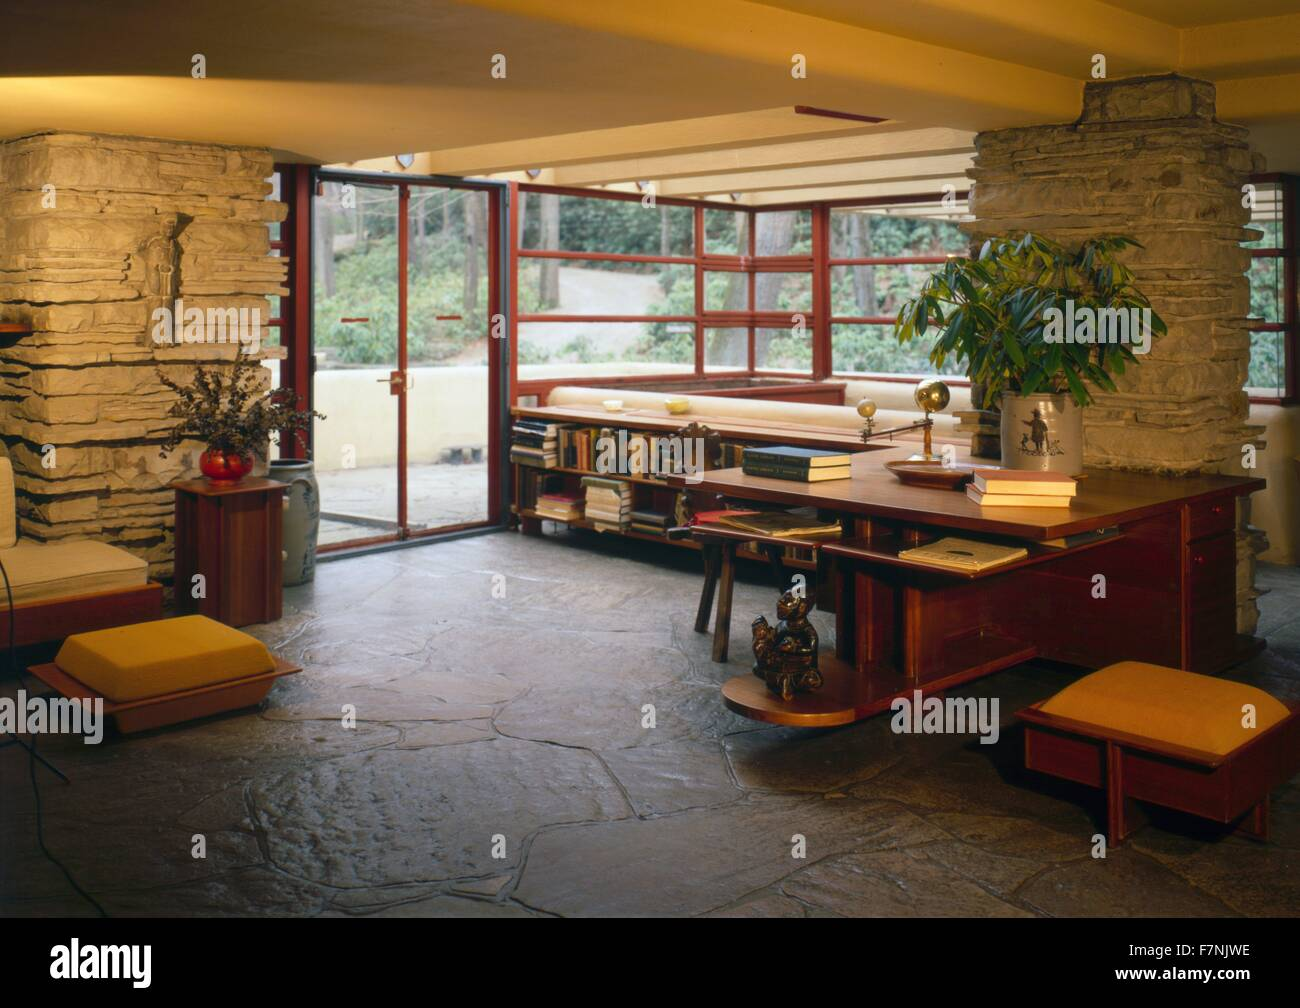 Interior view showing living room at fallingwater or kaufmann residence is a house designed by architect frank lloyd wright in 1935 in rural southwestern